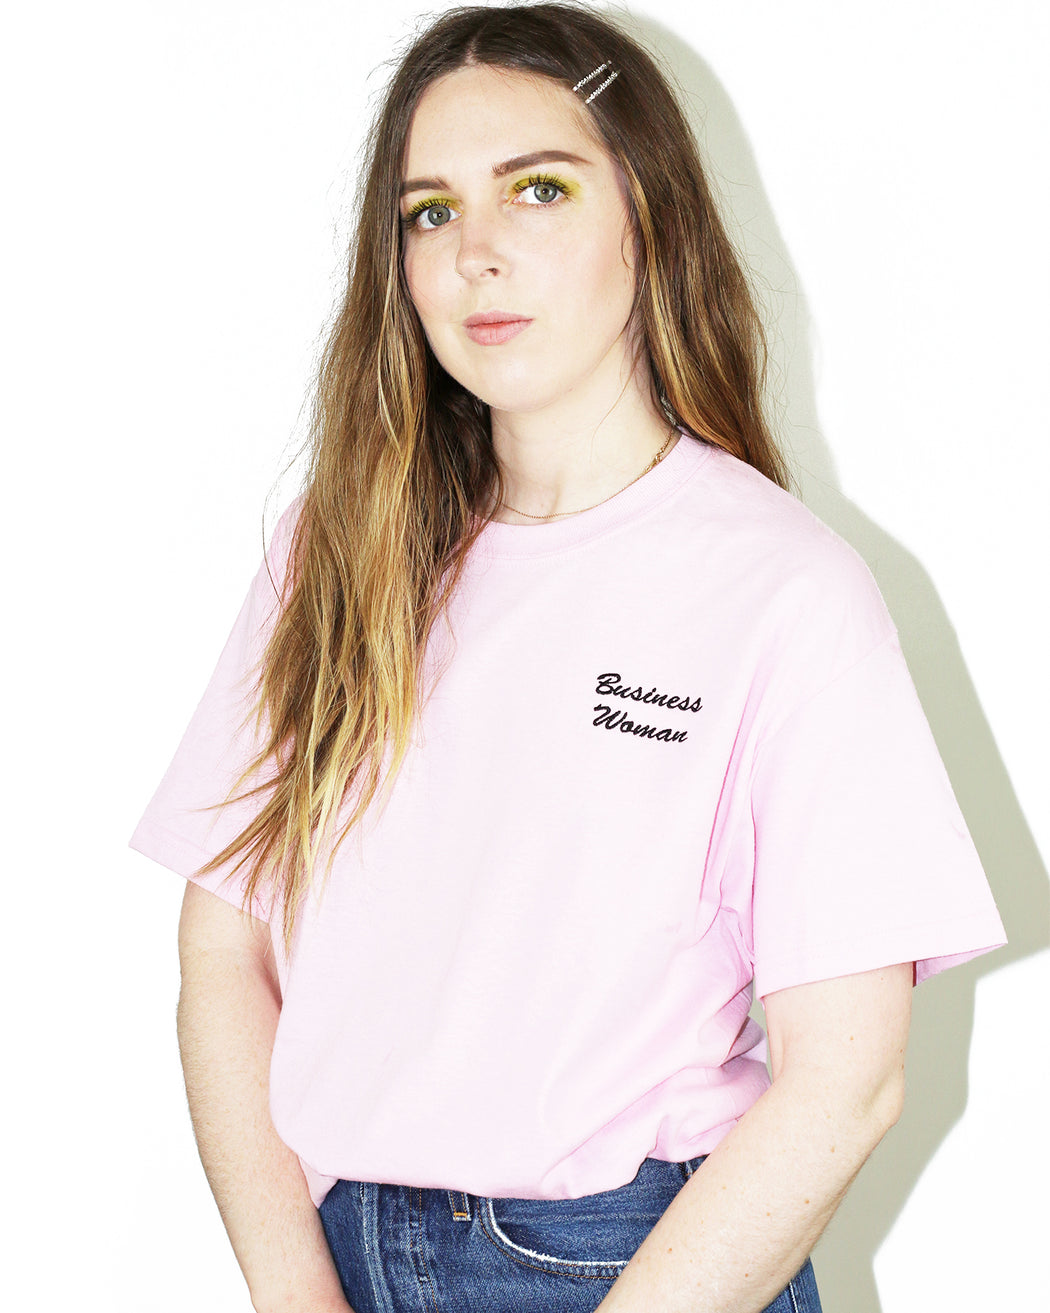 Double Trouble Gang:Business Woman Tee – Black on Pink Embroidery,ANOMIE